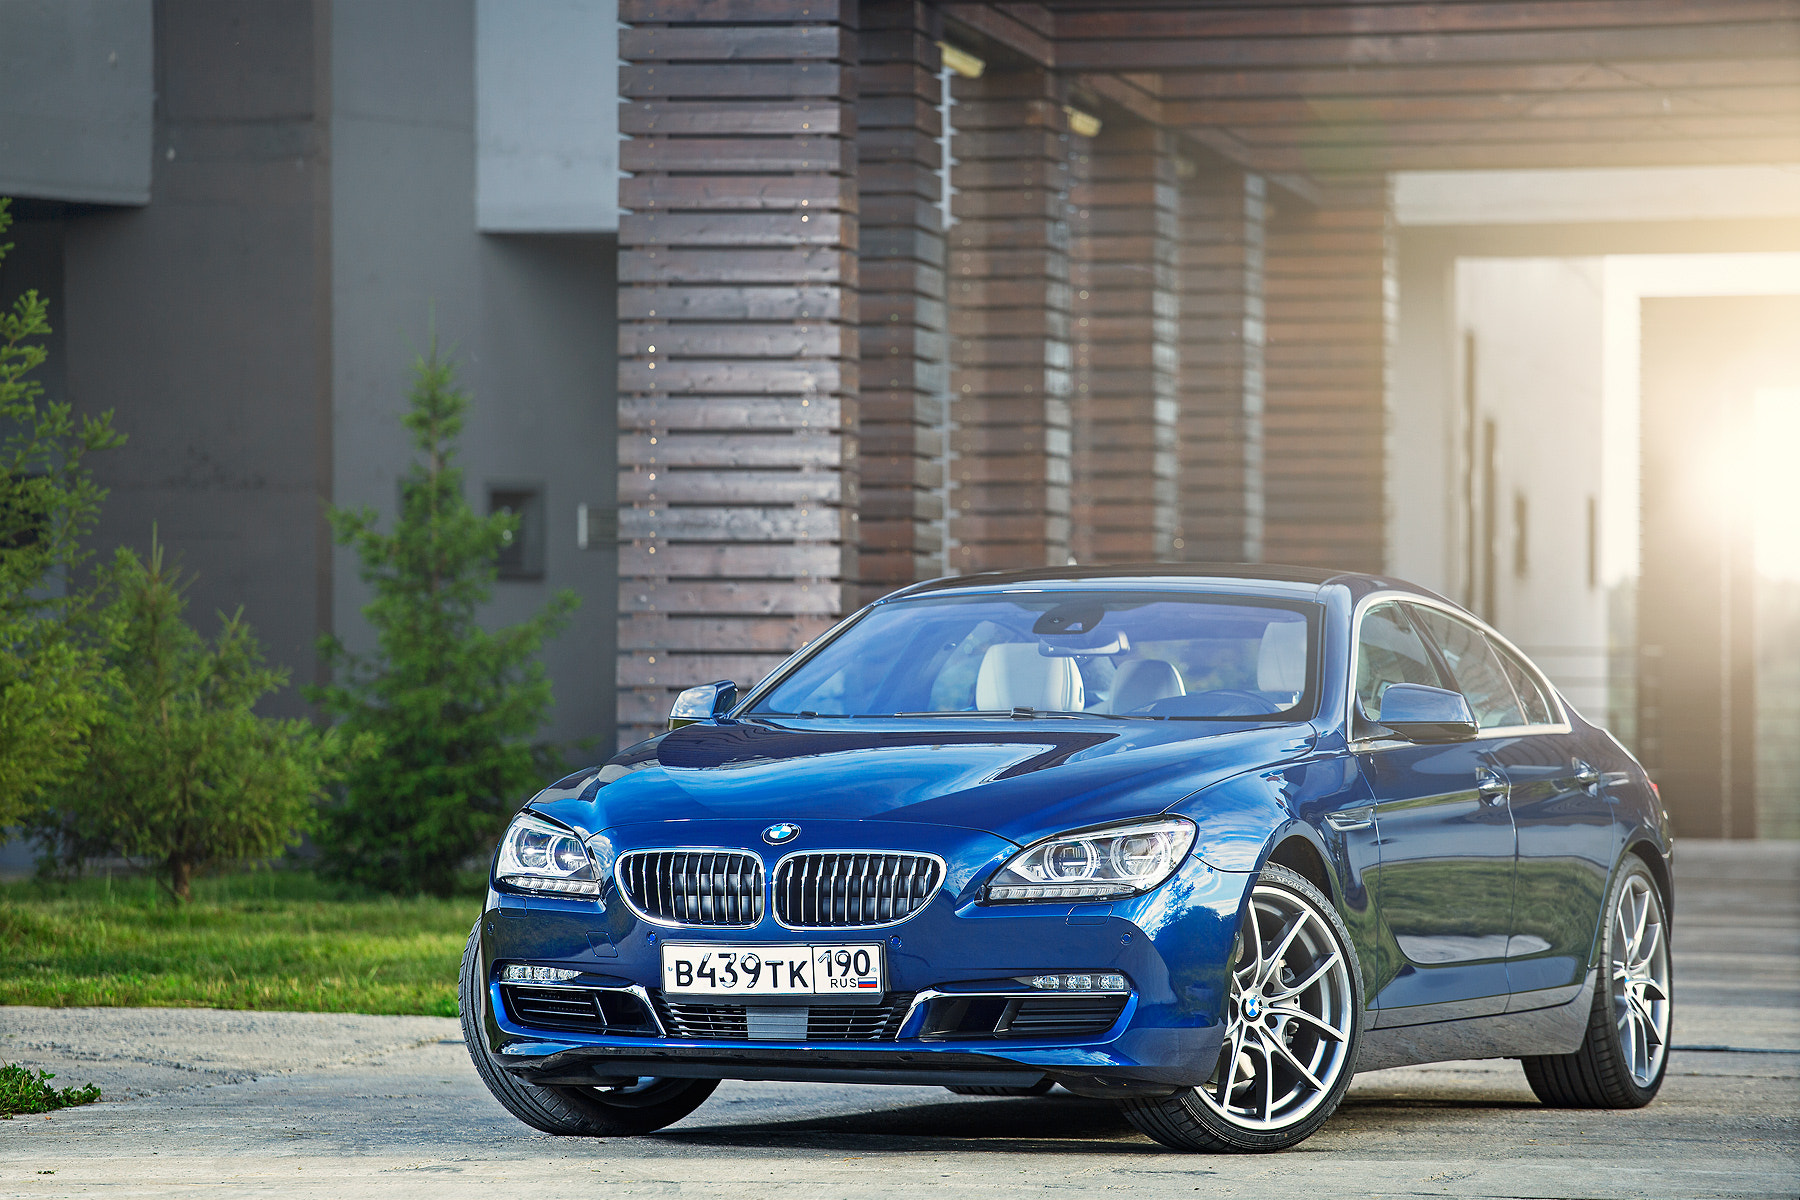 Photograph BMW Grand Coupe by Alexey Sulima on 500px